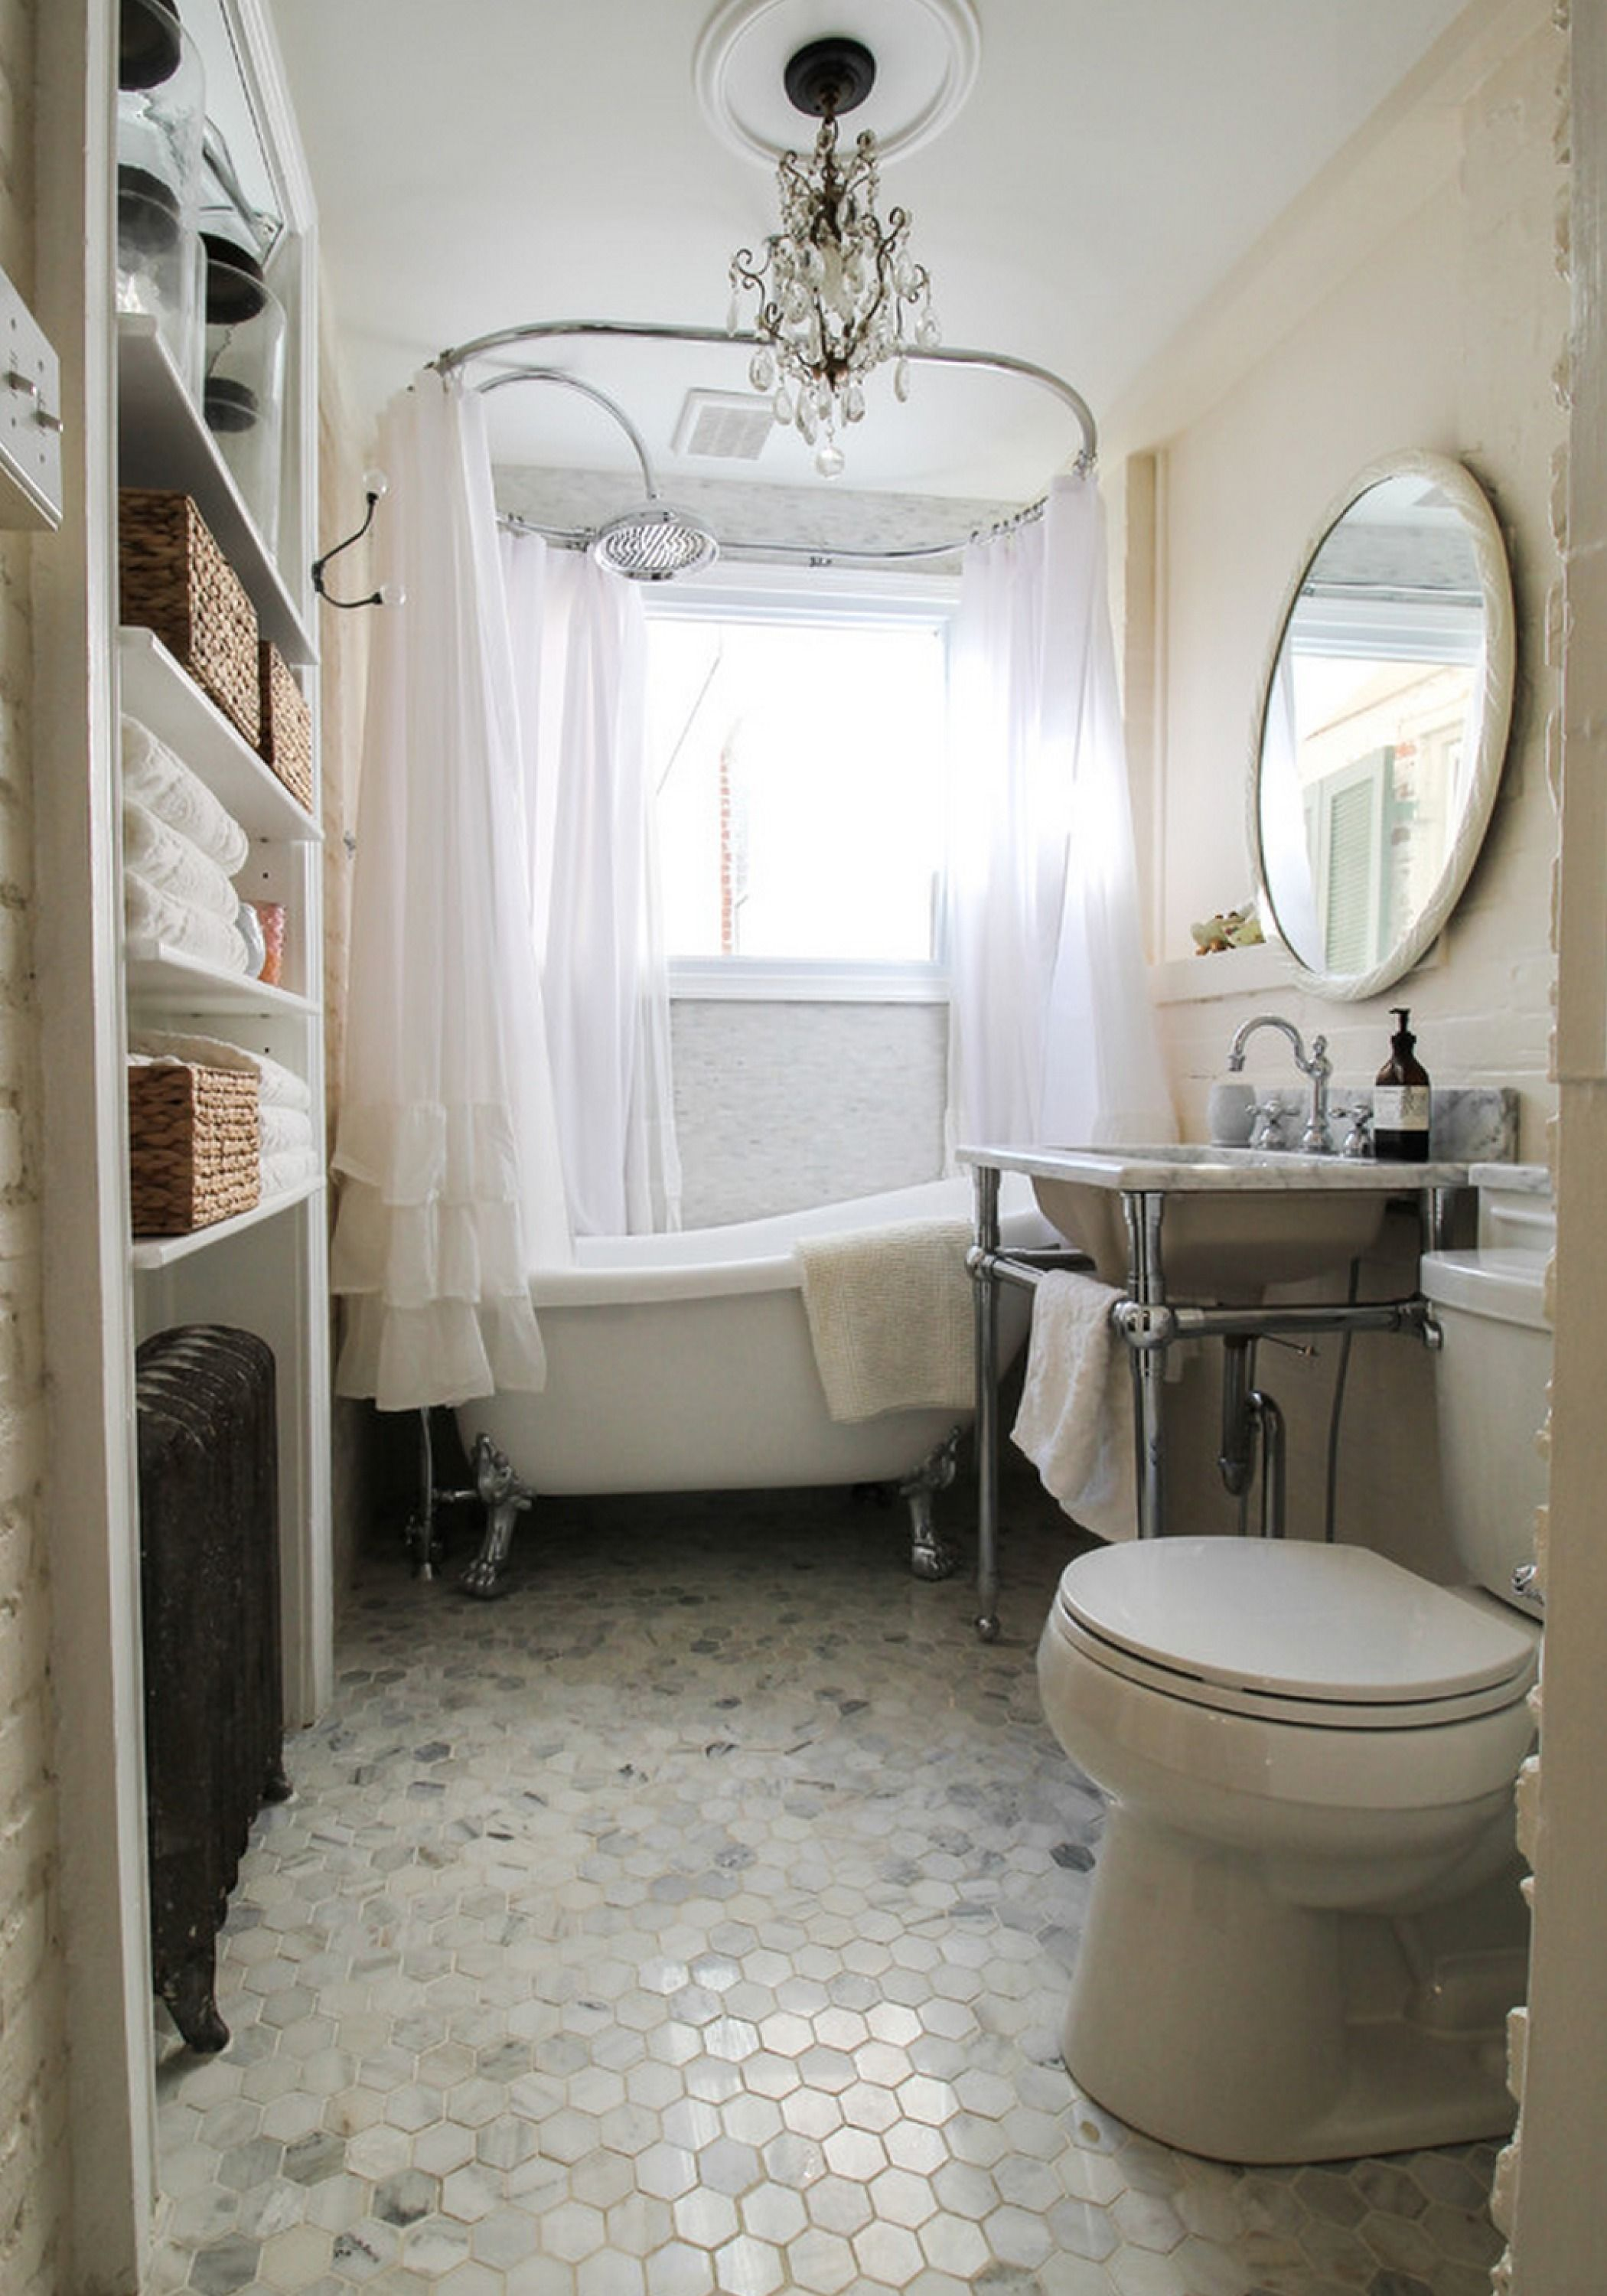 designs htrenovations vintage remodeling bathroom bathrooms